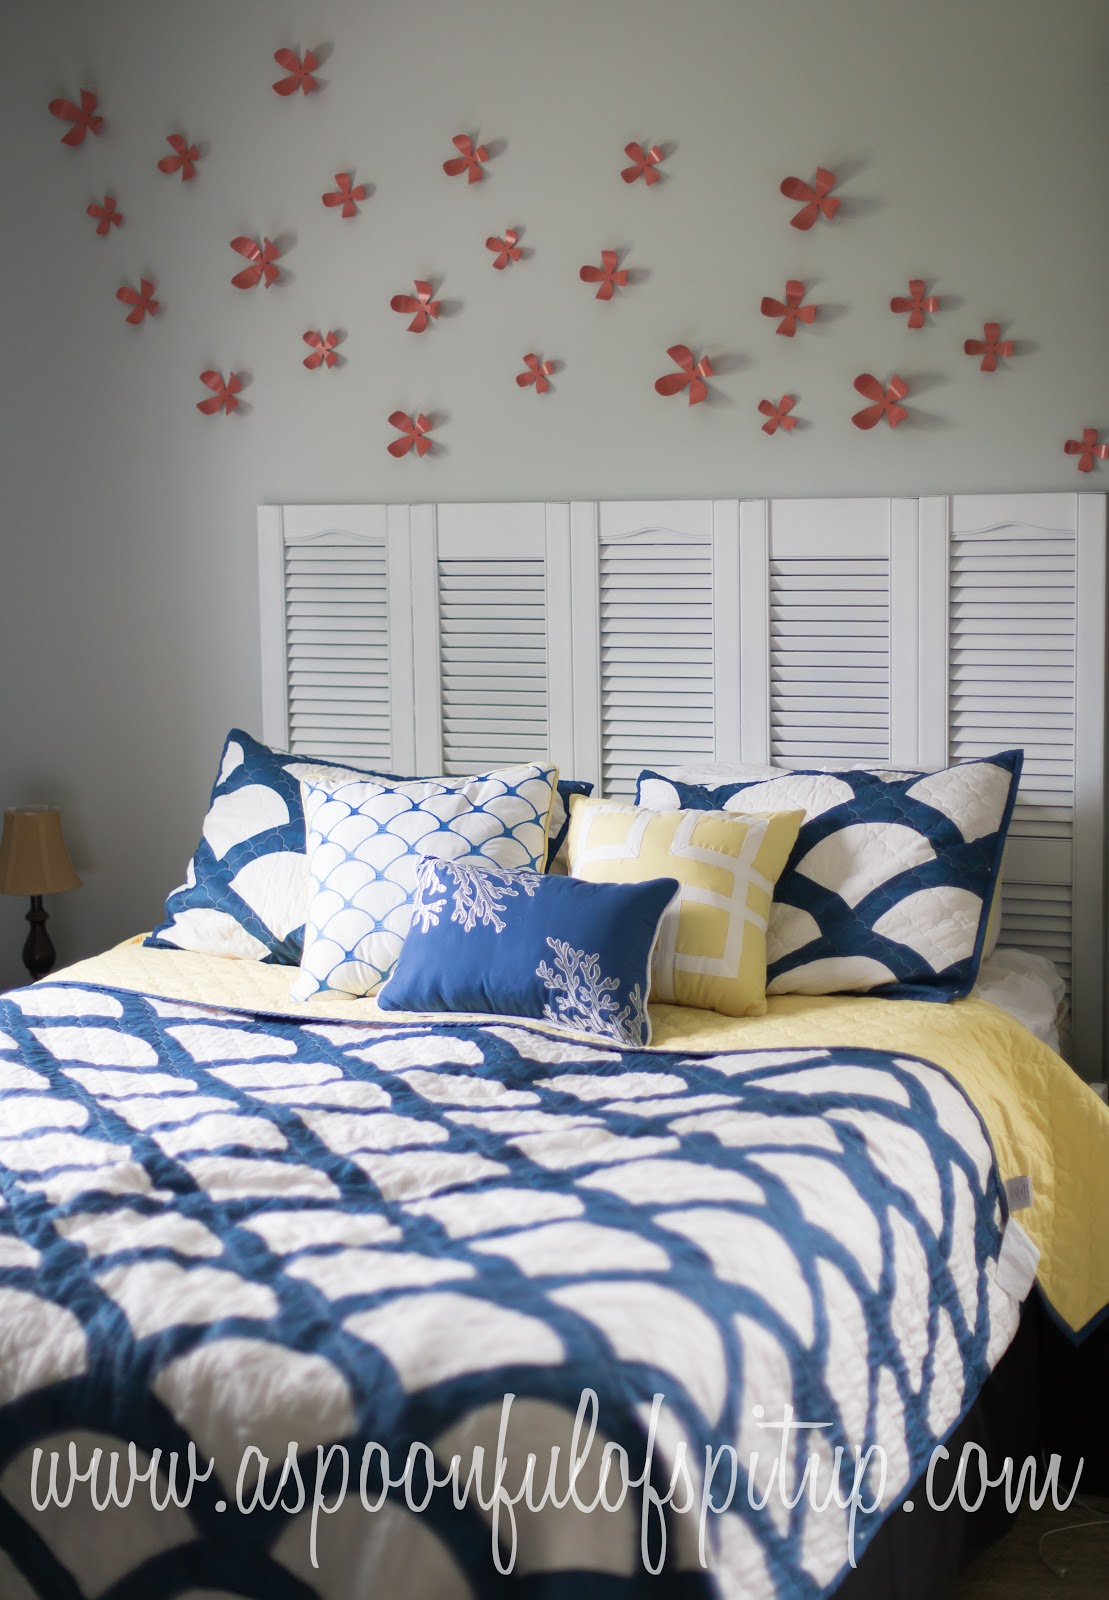 To See How Beautiful It Would Be There Are Holes In The Back Of Shutters So They Can Hung We Used Hooks On Wall Hang Headboard